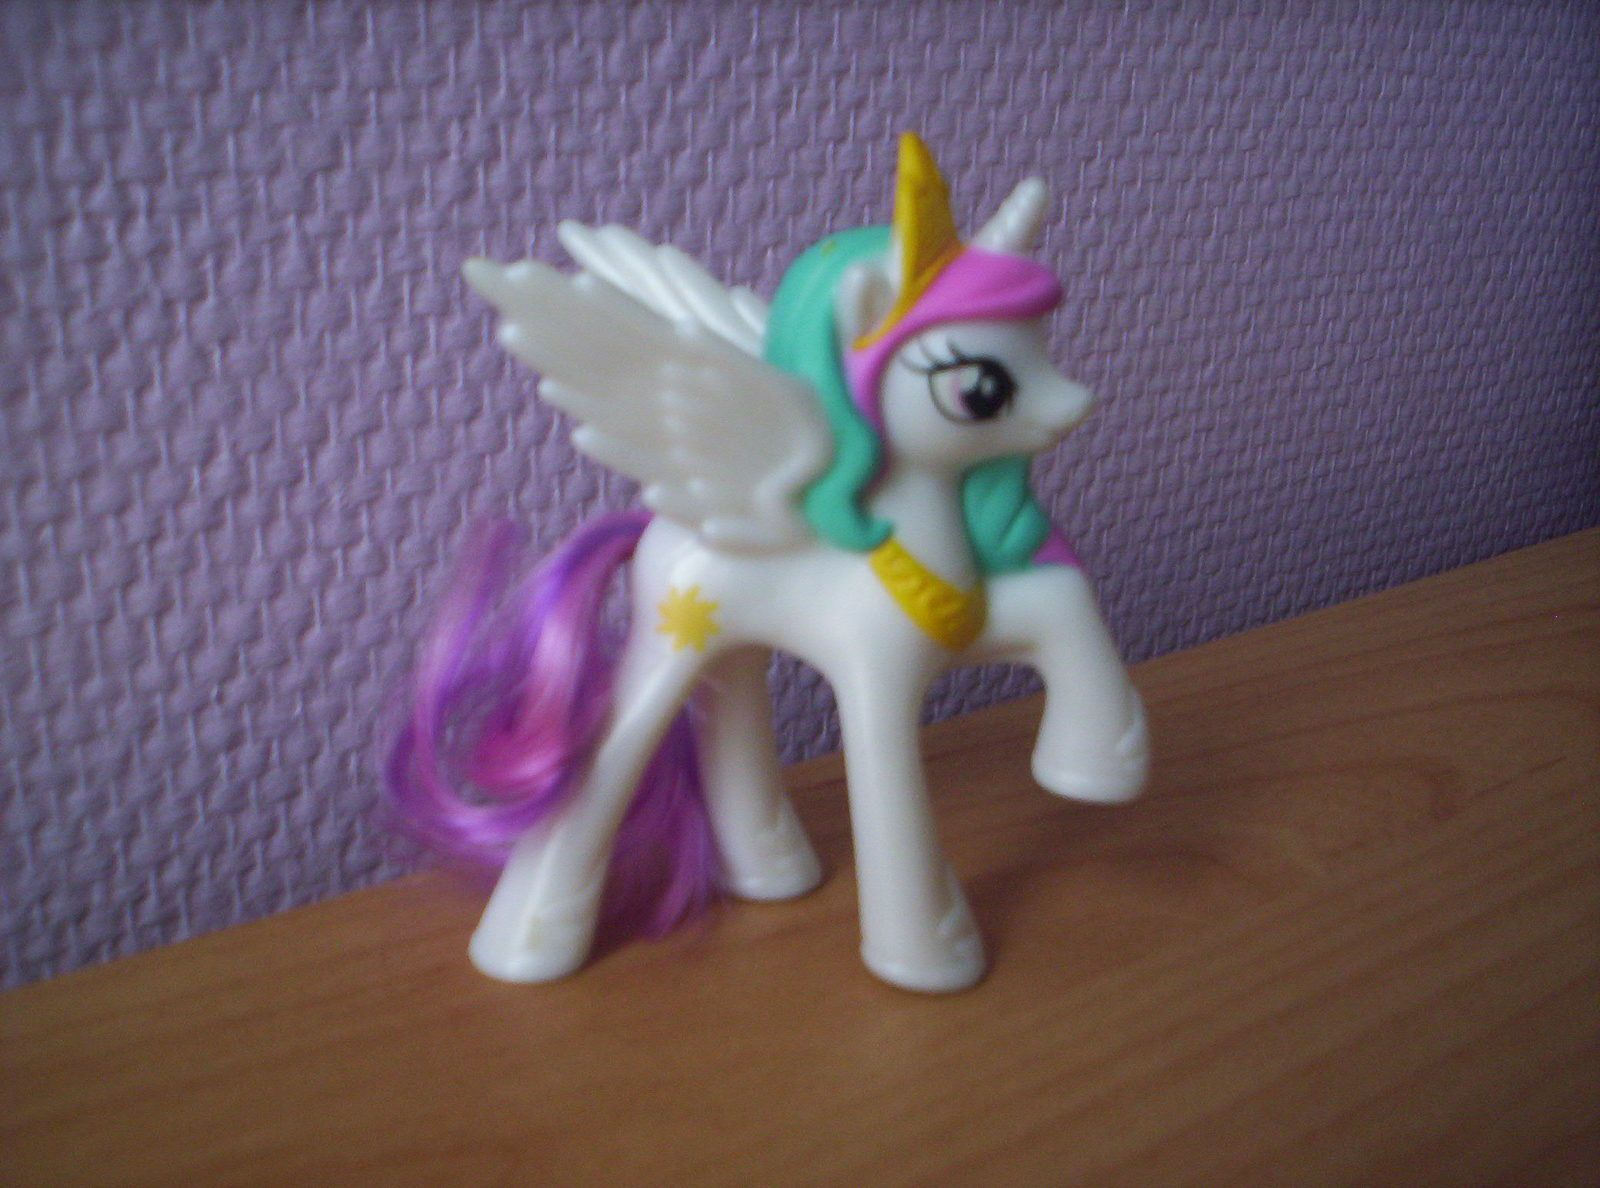 Figurine Celestia, Mc Do, 2014.